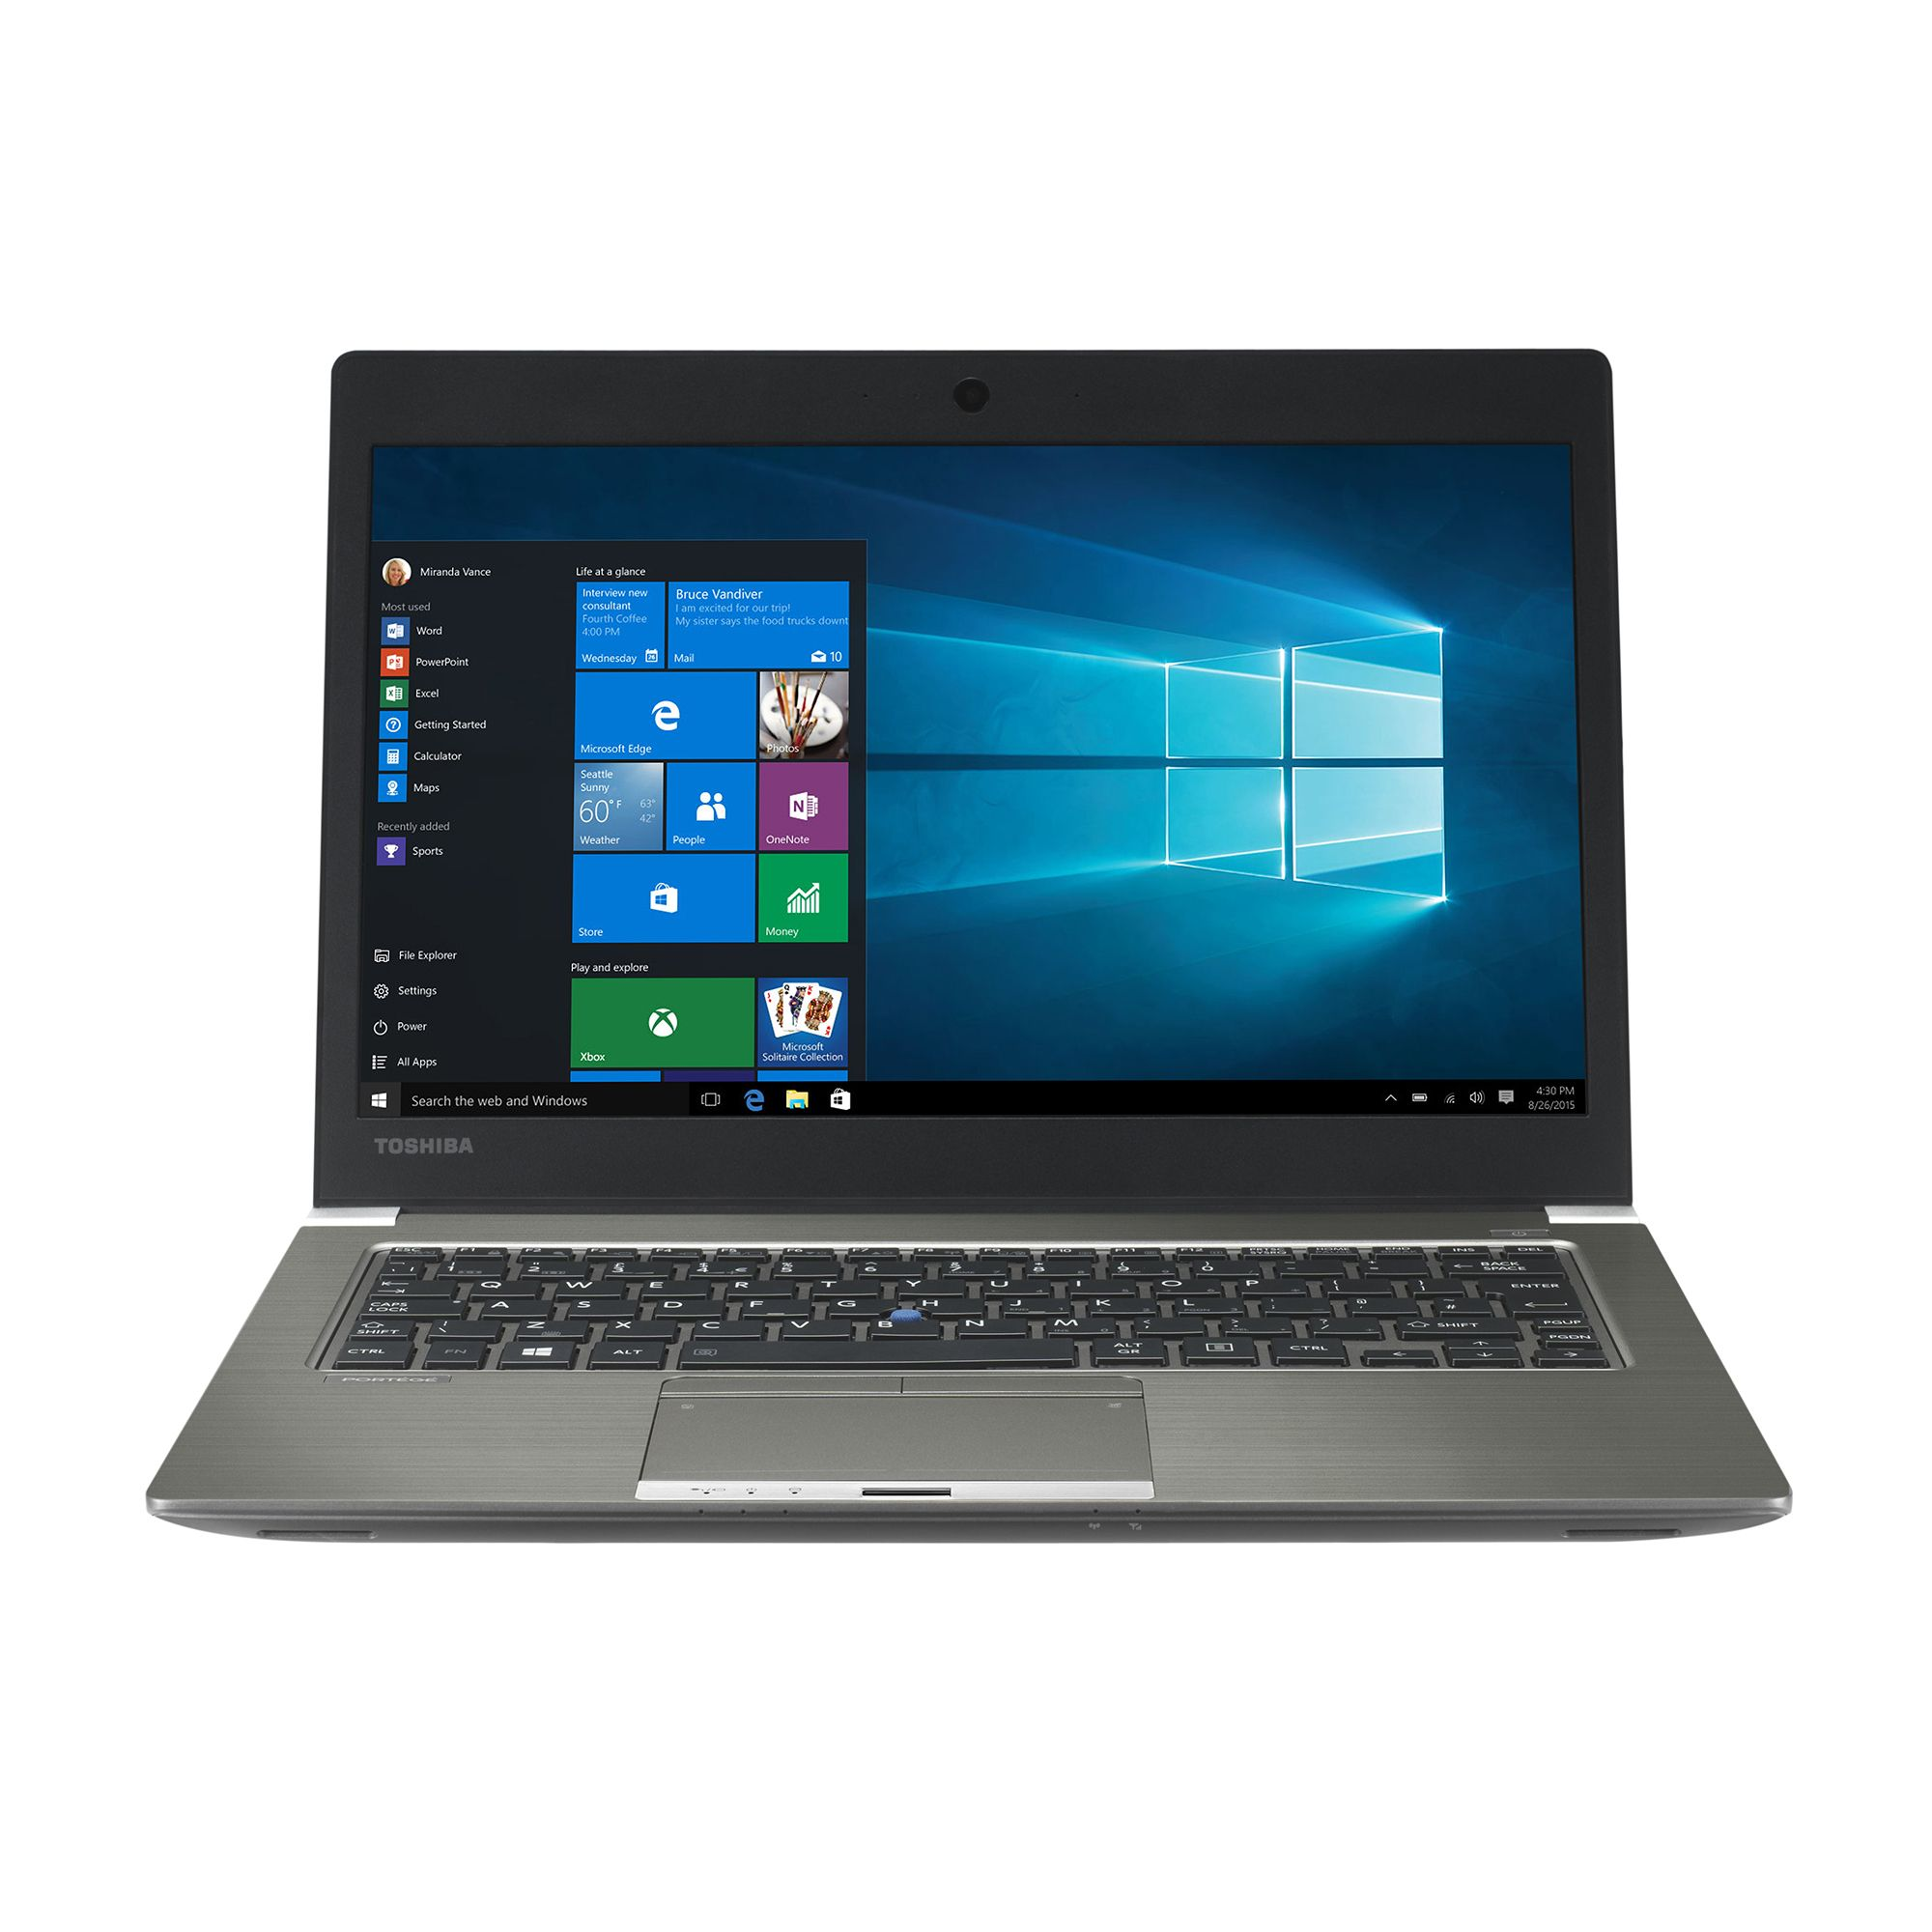 Ultrabook Toshiba Portege Z30t-C-133 13.3 Full HD Intel Core i7-6500U RAM 16GB SSD 512GB 4G Windows 10 Pro